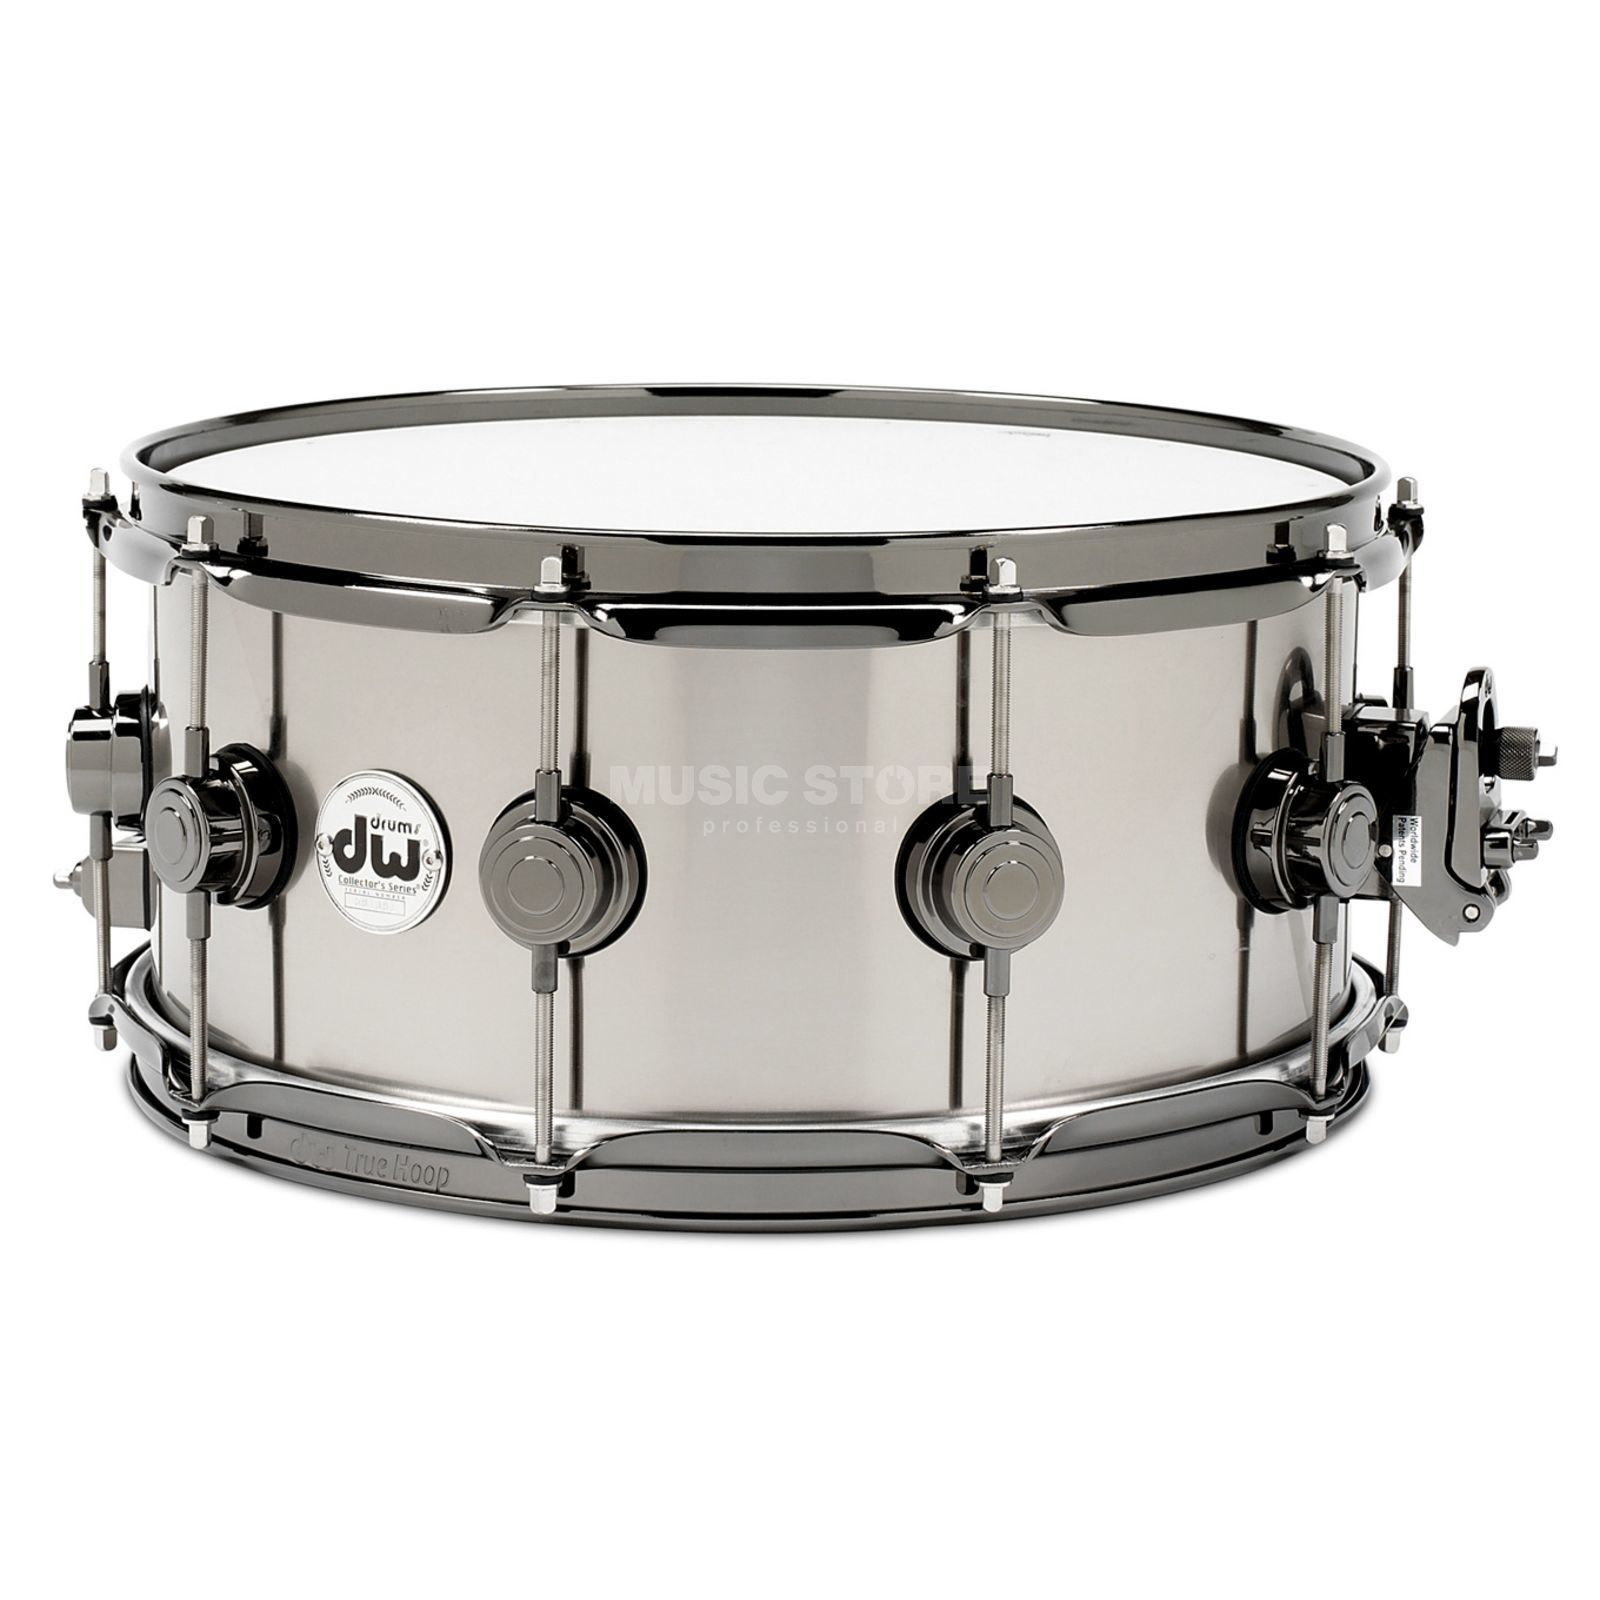 "Drum Workshop Collector´s Snare 14""x6.5"", Titanium Black Nickel Produktbillede"